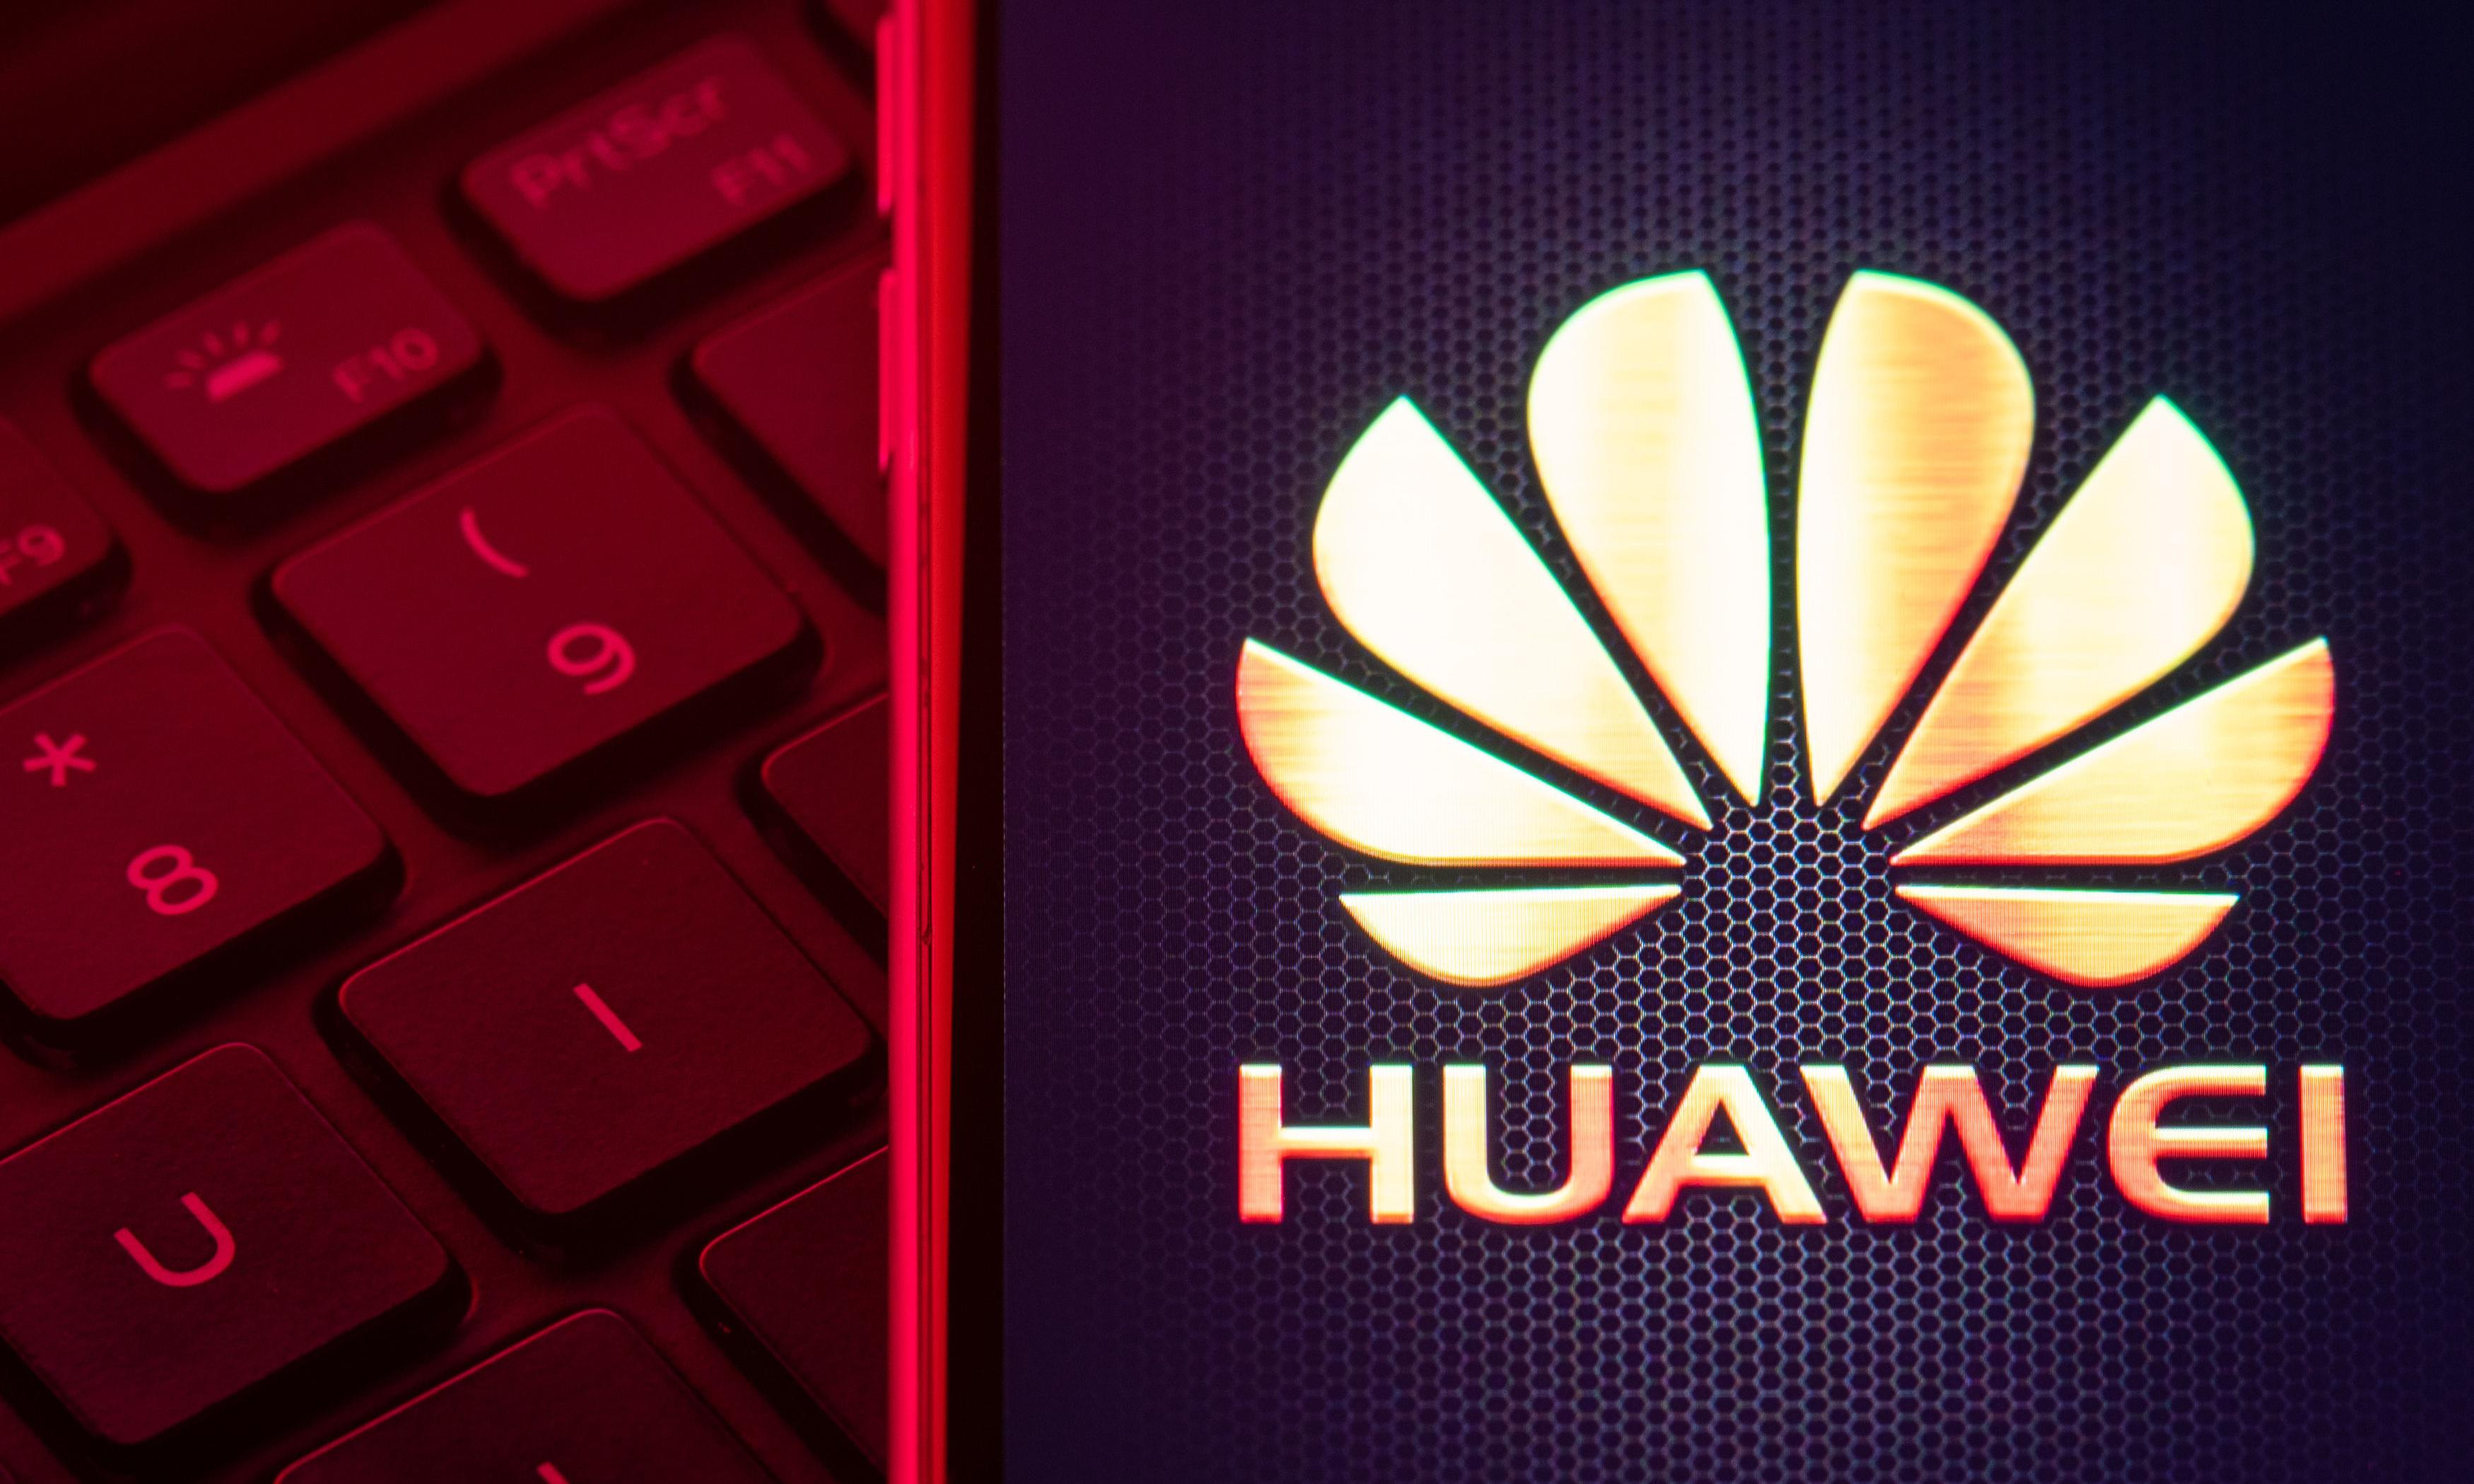 Huawei decision is a sensible compromise but could still anger US